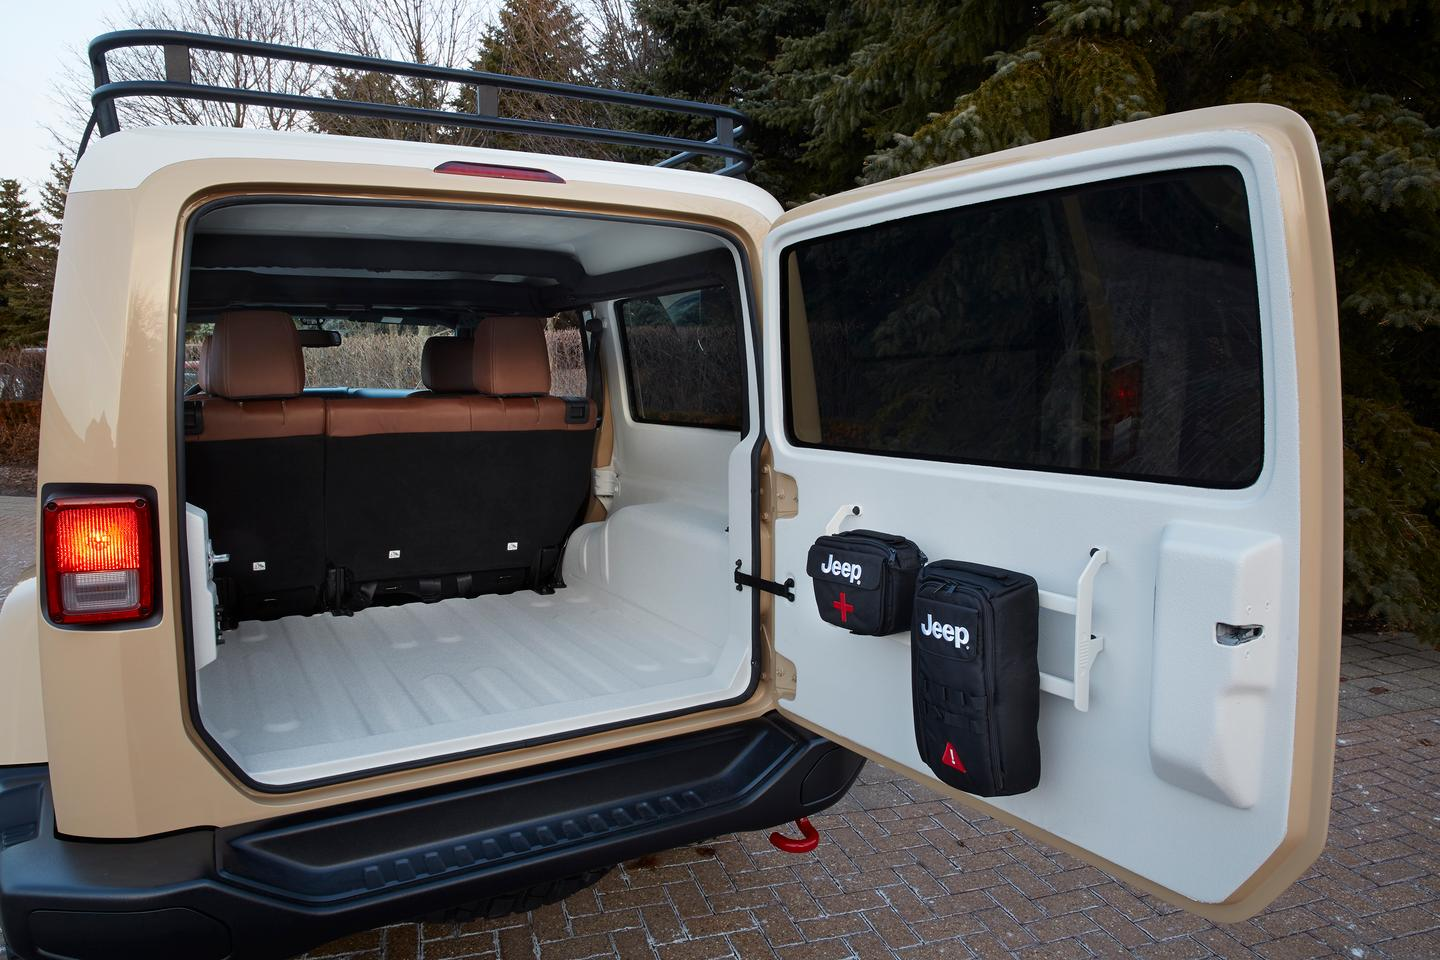 The Wrangler Africa has a spray-in truck bed coating in the cargo area, inner roof and floor